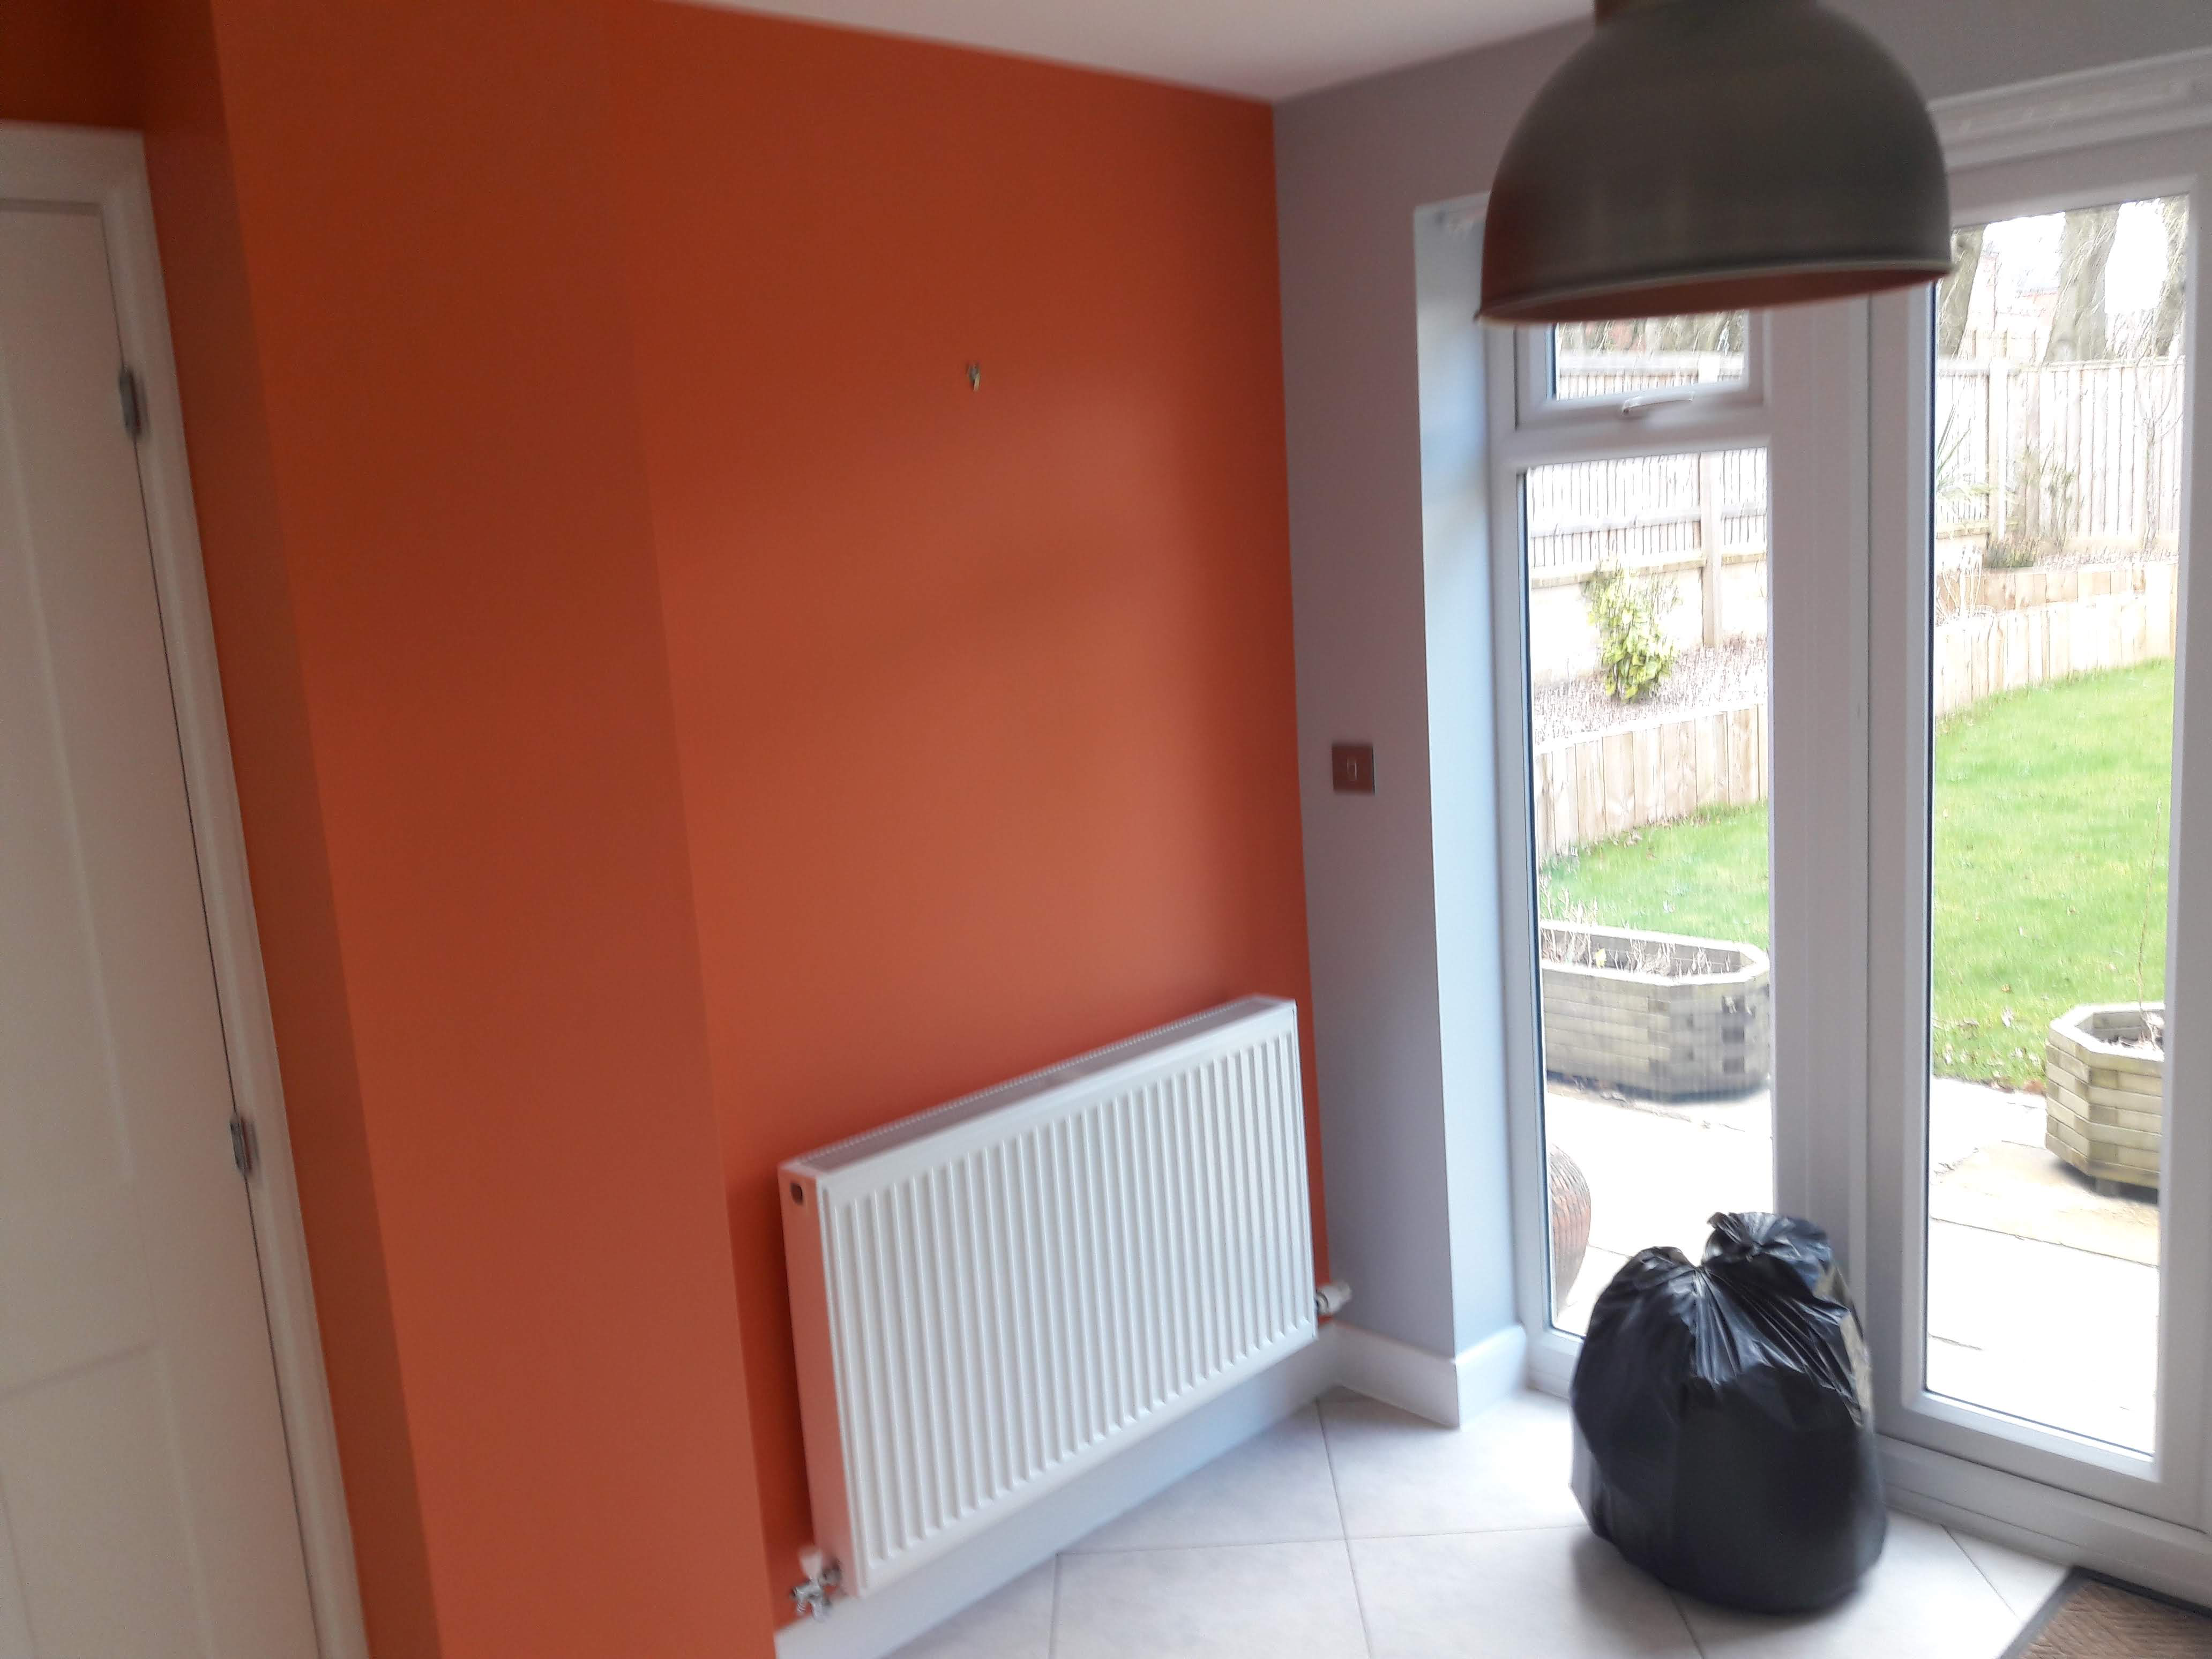 Kitchen wall painted in home by Gareth Thompson Painter & Decorator in Cookridge, Leeds